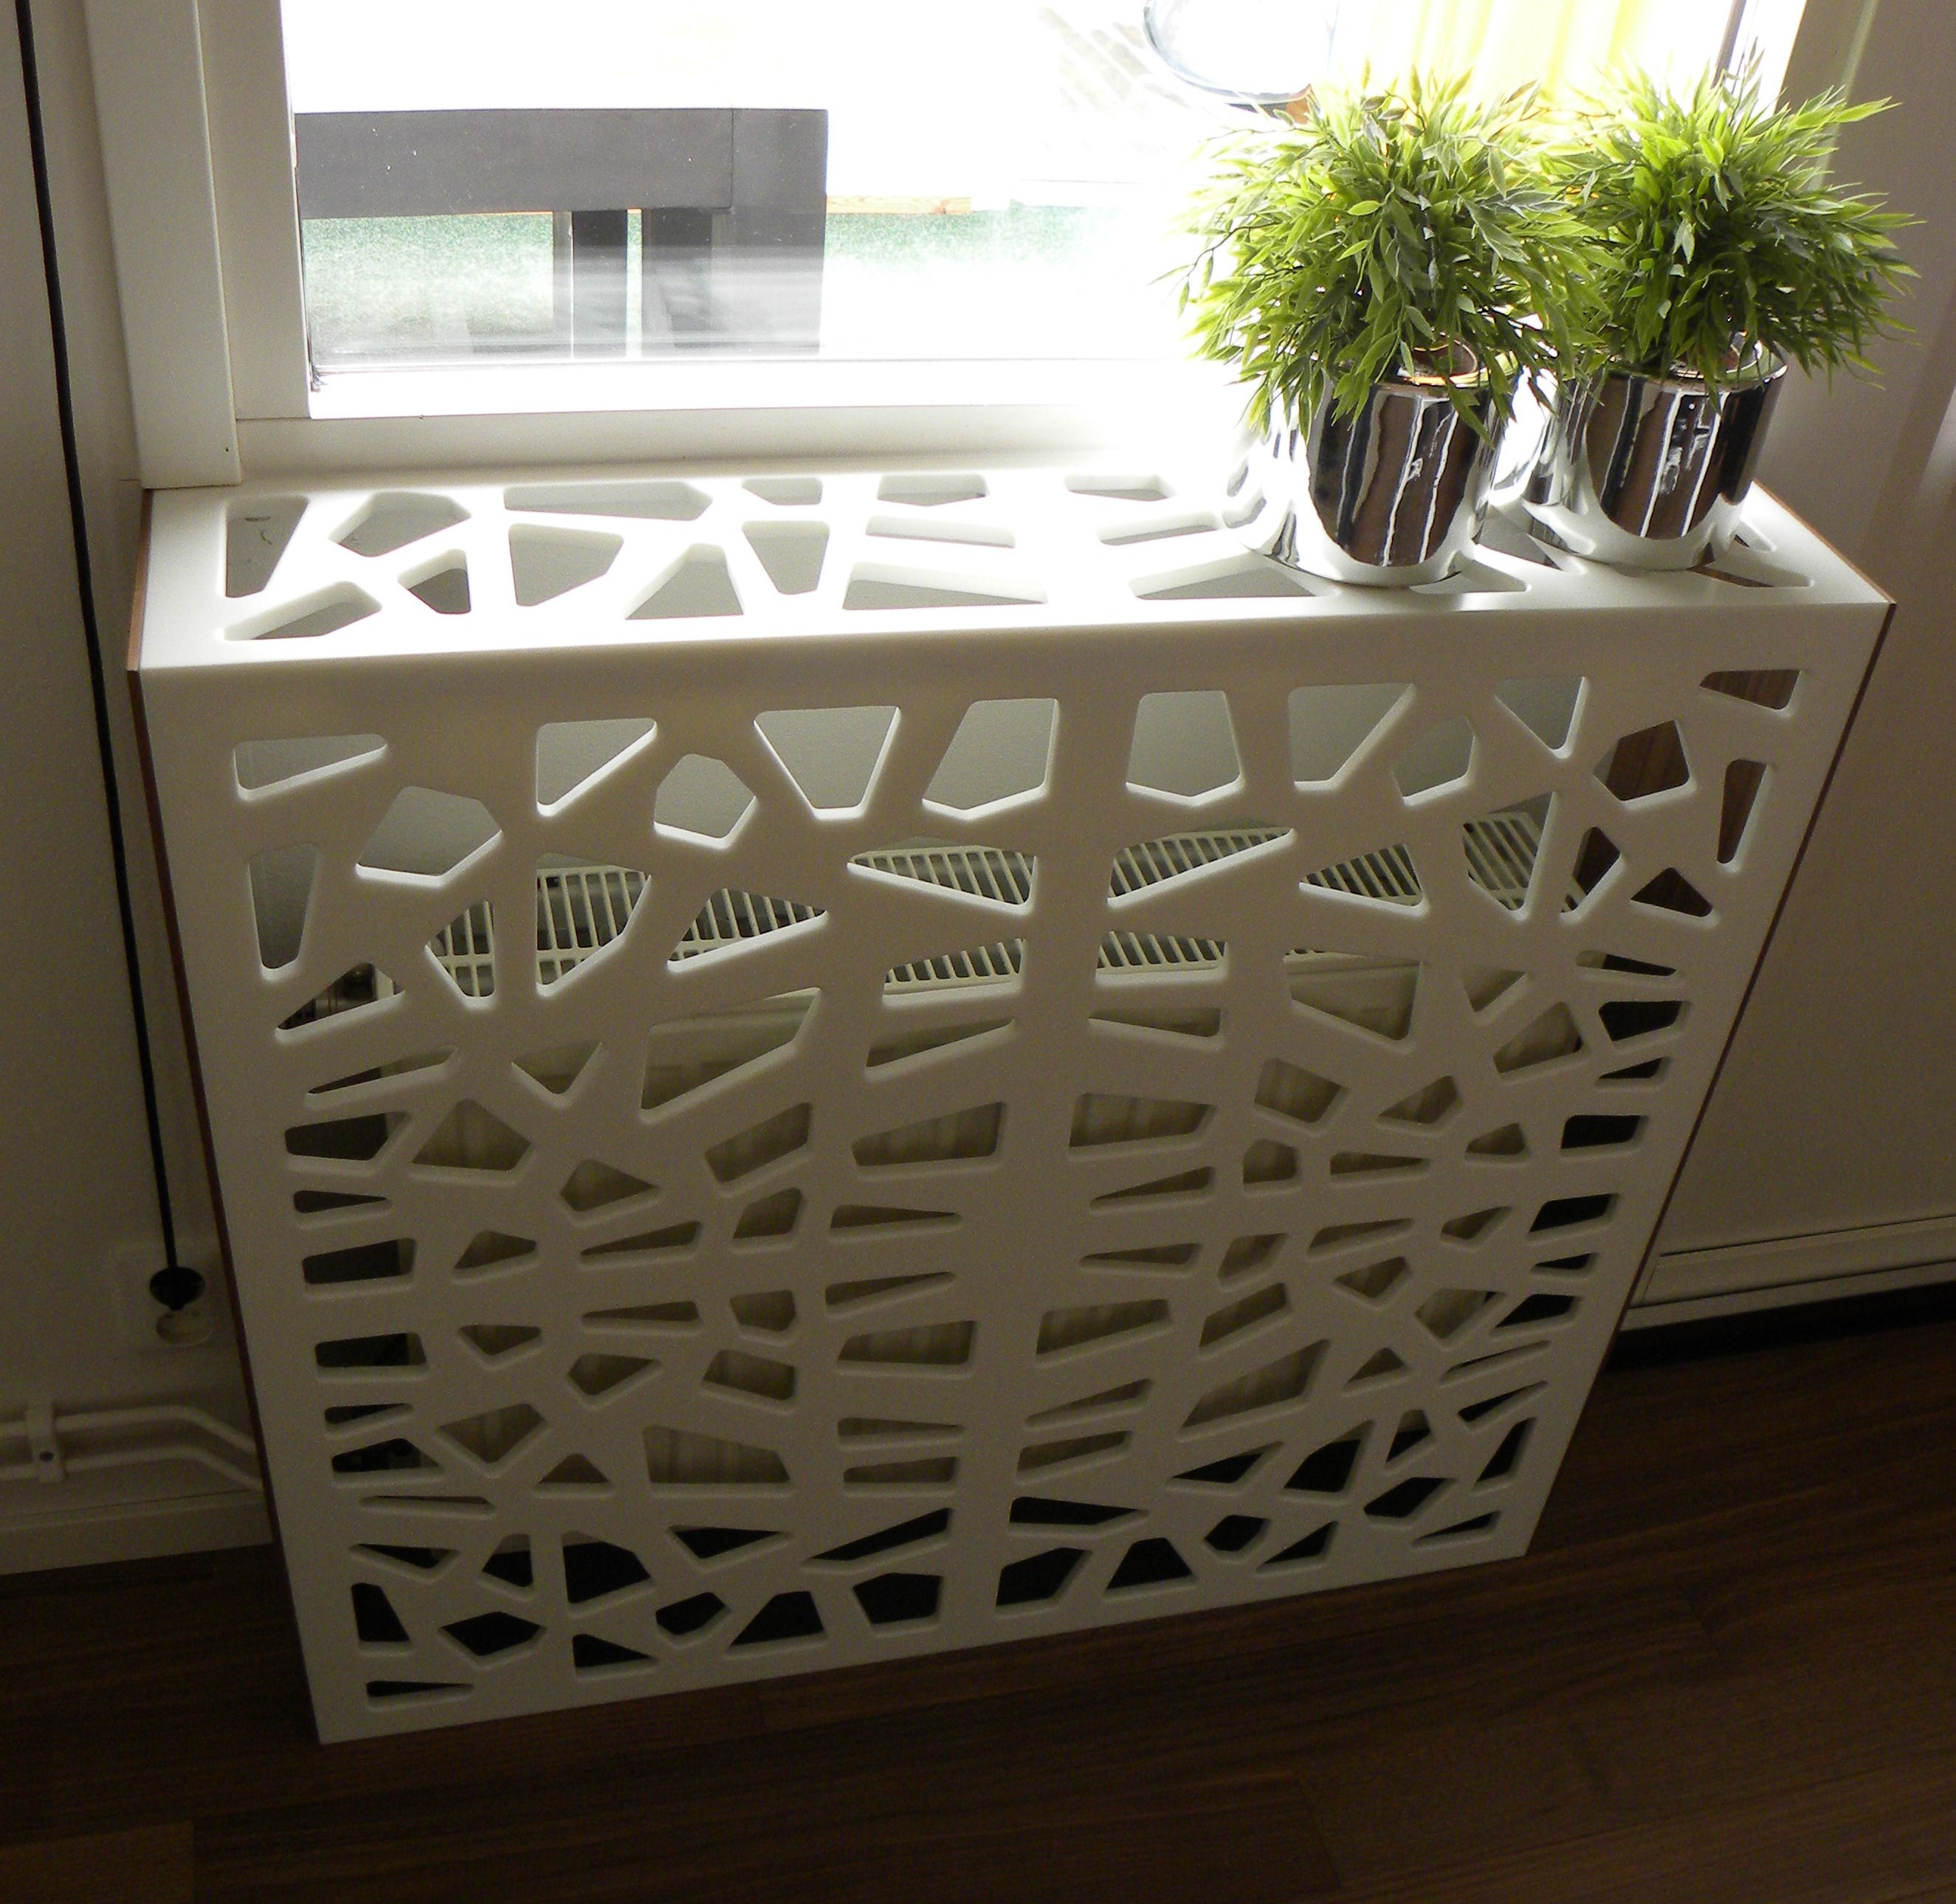 Corian cover for radiator! There are so many amazing things you can create  with corian